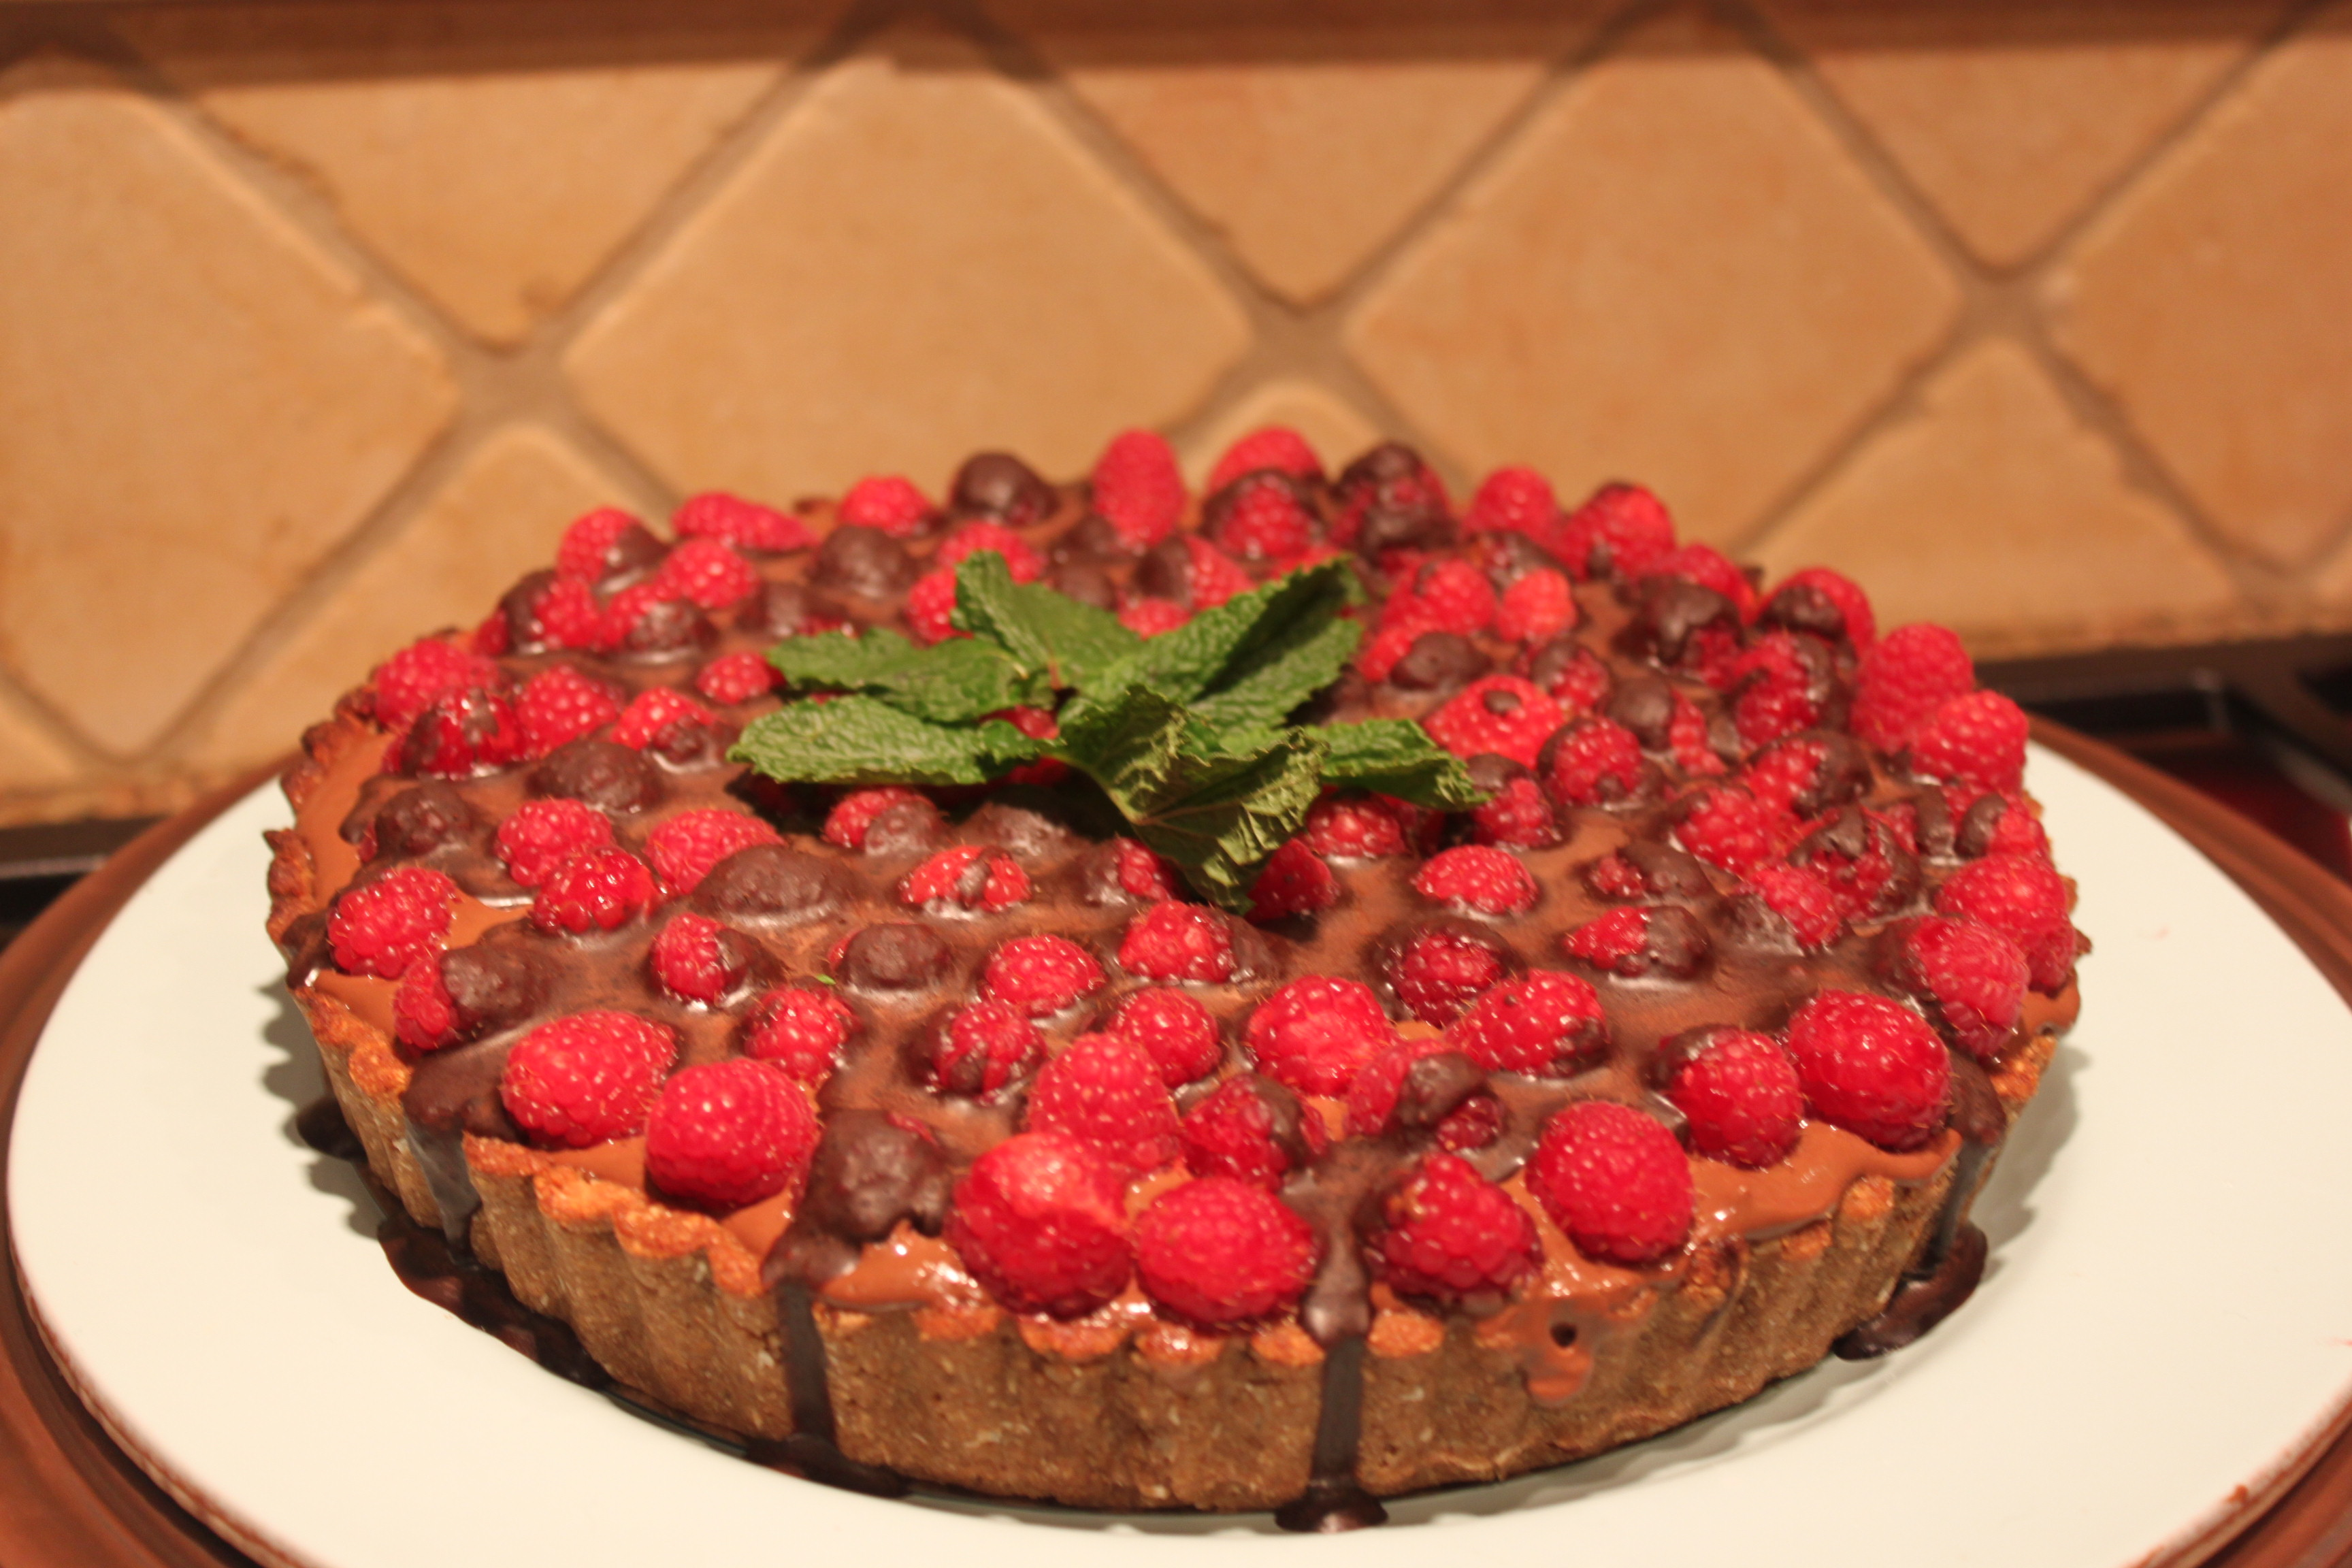 Raspberry Chocolate Pie that Will Change Your Views on Healthy ...